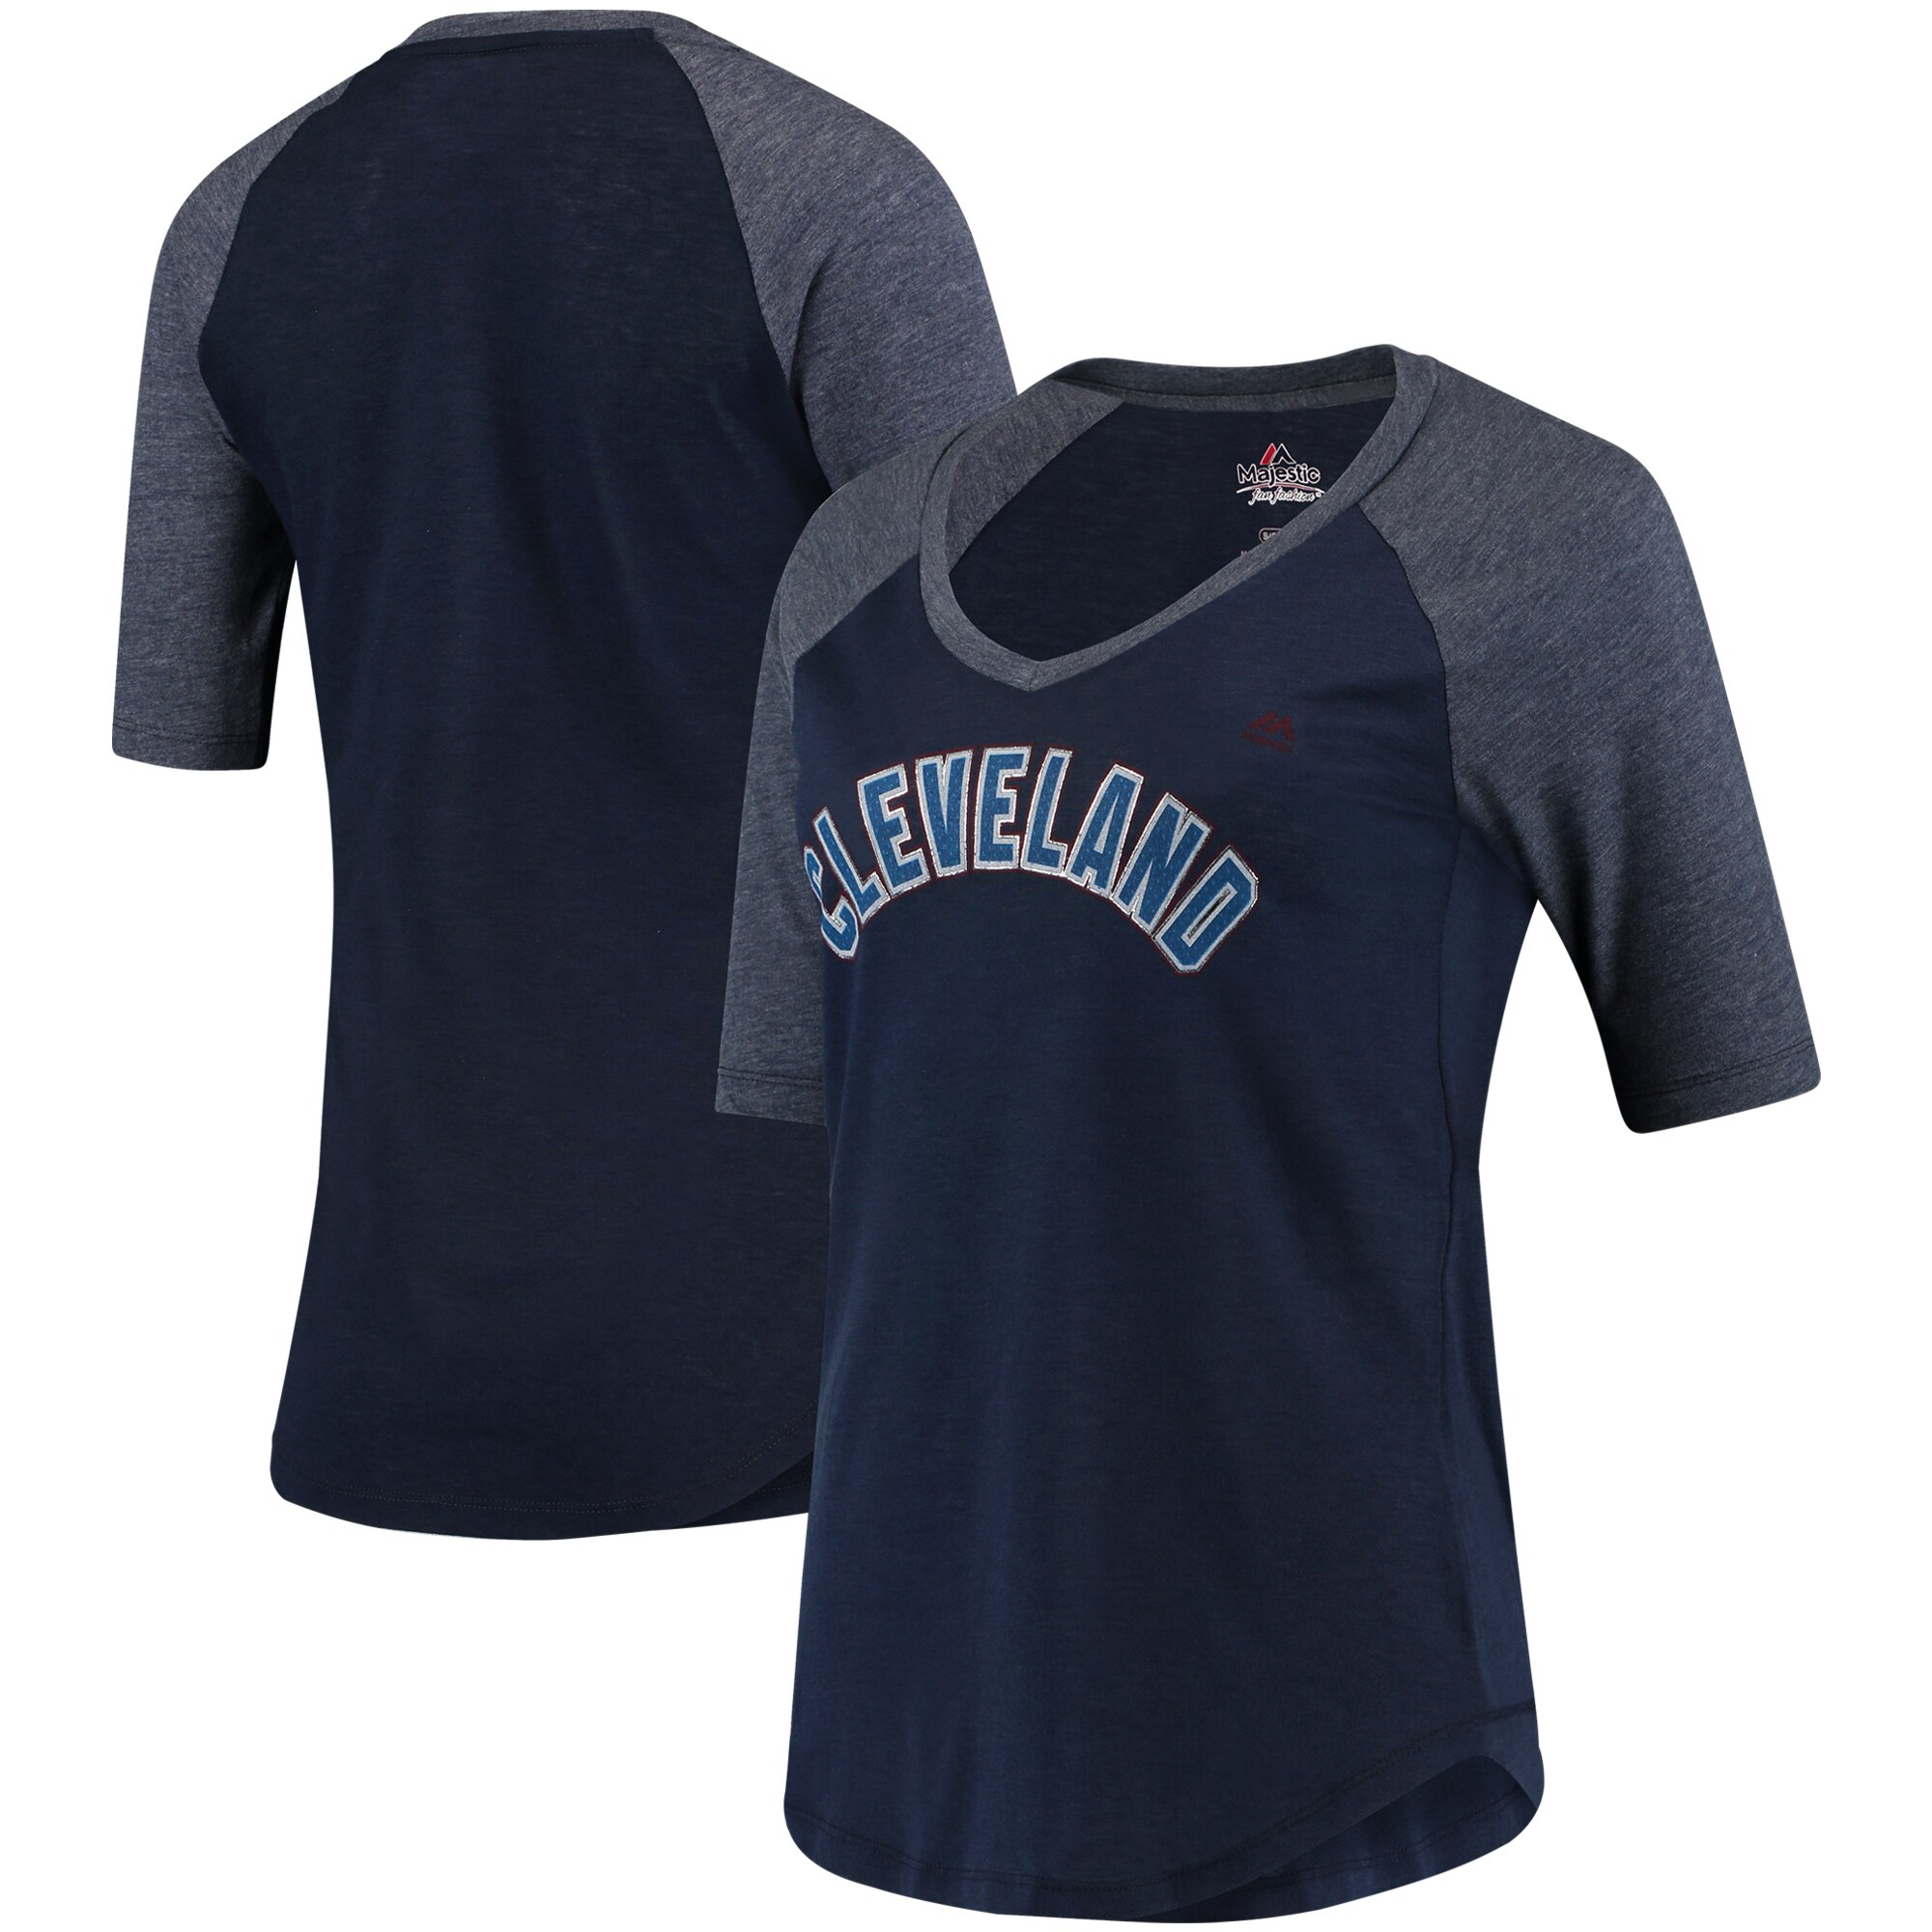 Cleveland Indians Majestic Women's Quick Hands Raglan Half-Sleeve T-Shirt - Navy